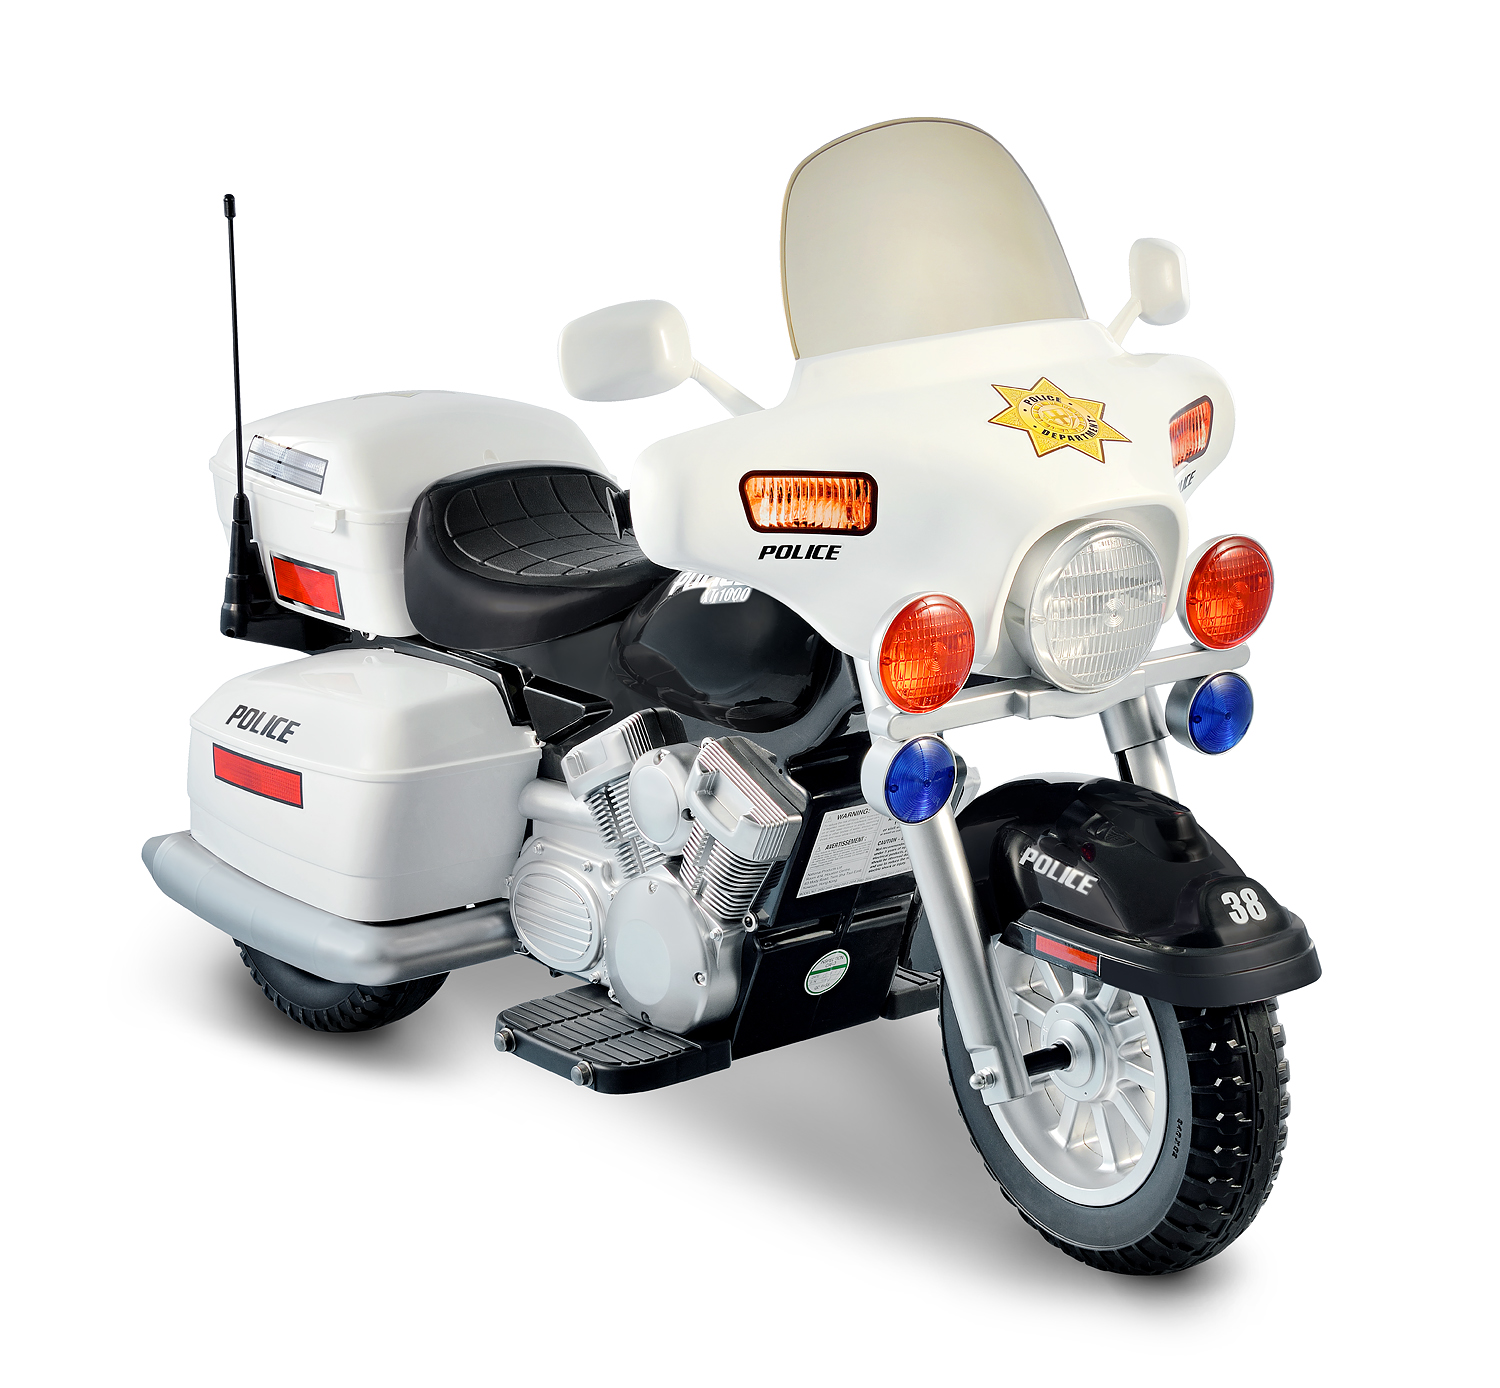 Kid Motorz Police Motorcycle 12-Volt Battery-Powered Ride-On, White by National Products Limited